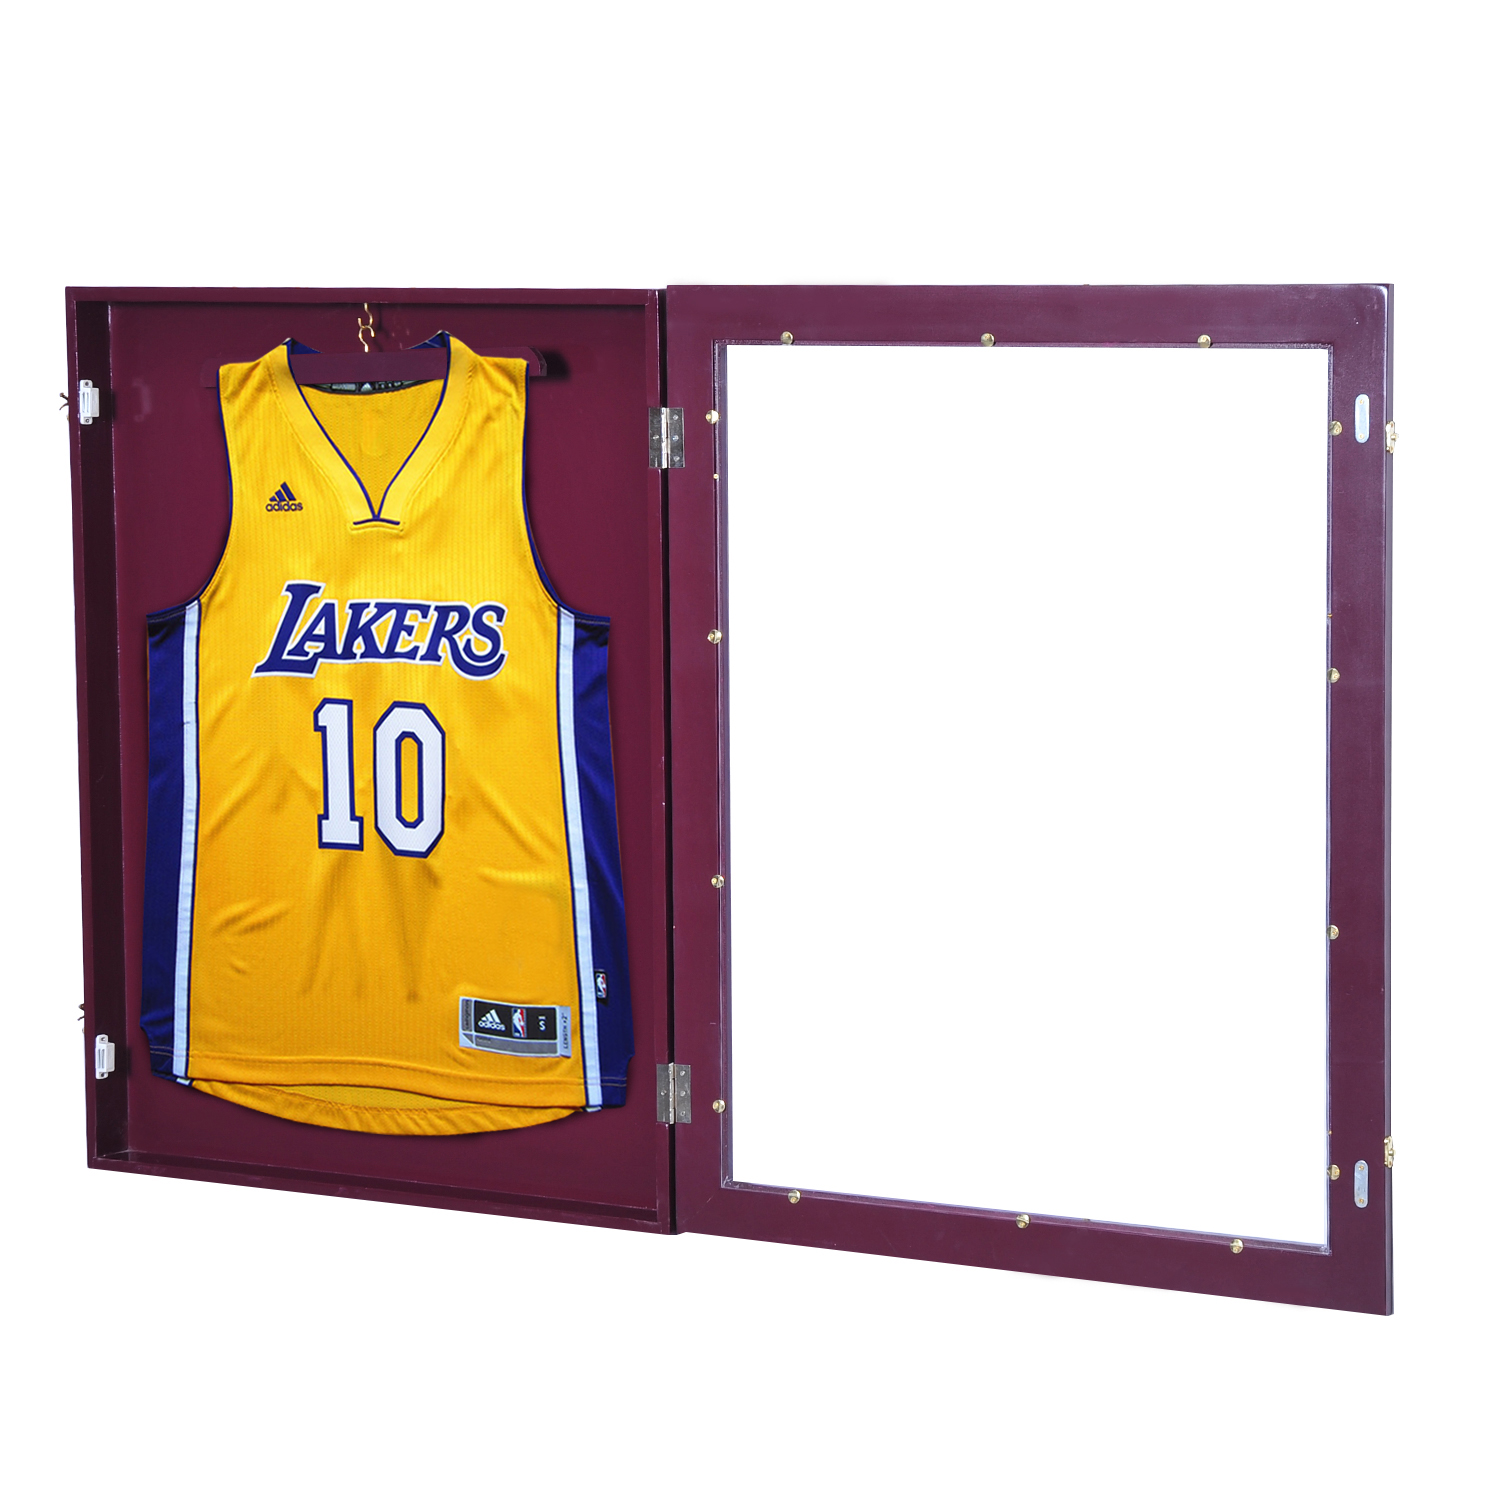 "90234dd7800 Details about 28""x35"" Jersey Display Case Shadow Box Football Basketball  Sport Jerseys"